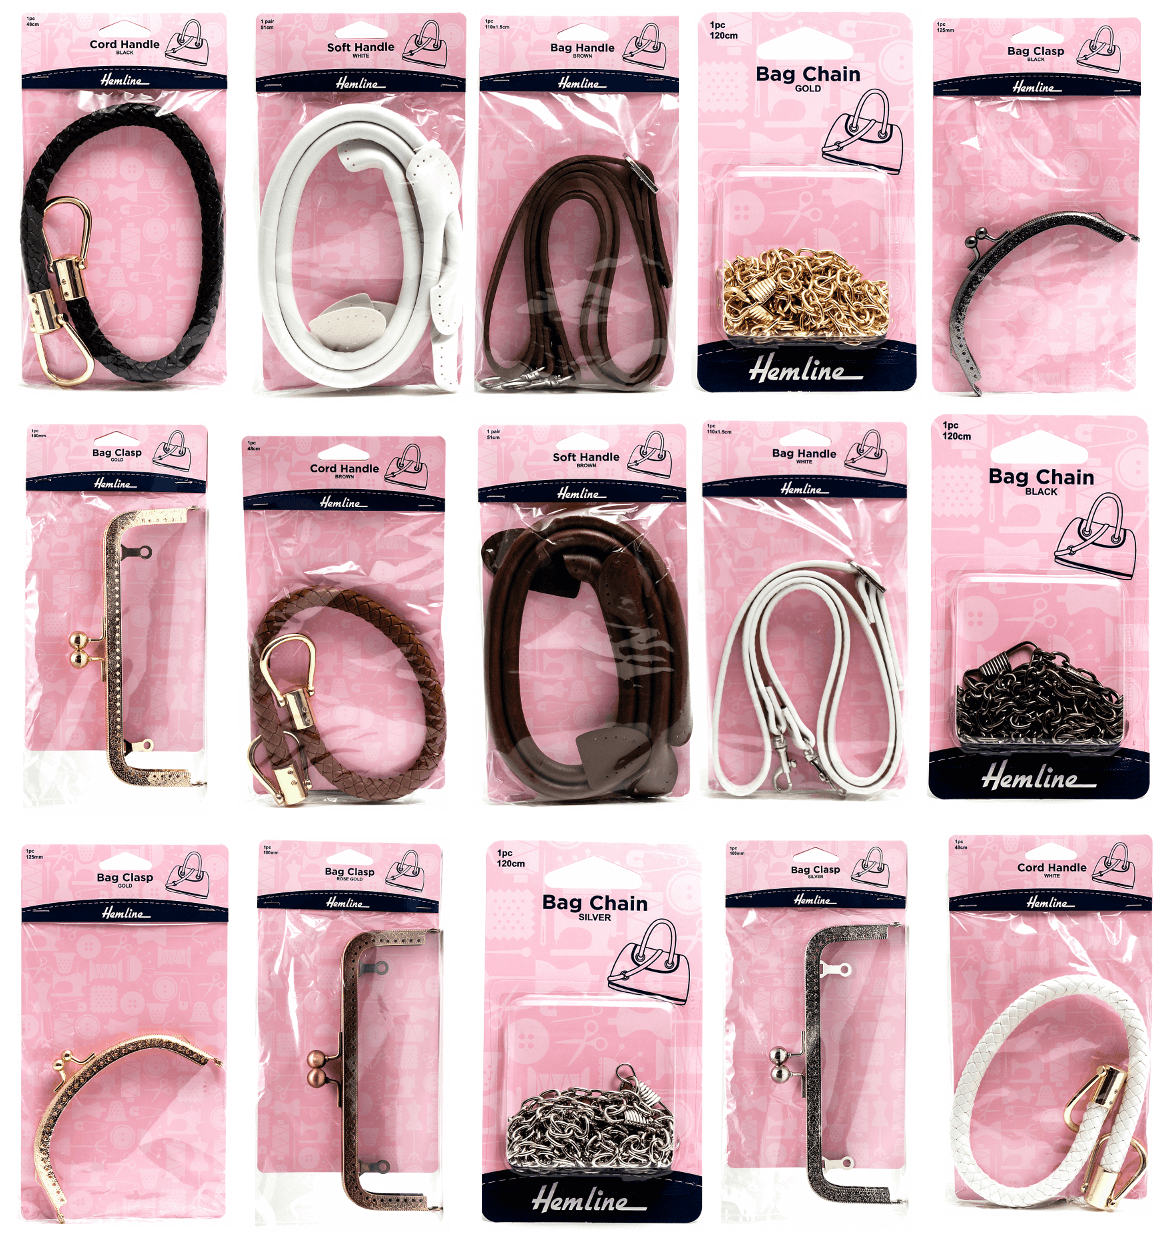 Hemline Clip On & Sew On Handbag Handle Cord Bag Accessories H4513_GD Bag Chain 120cm Gold